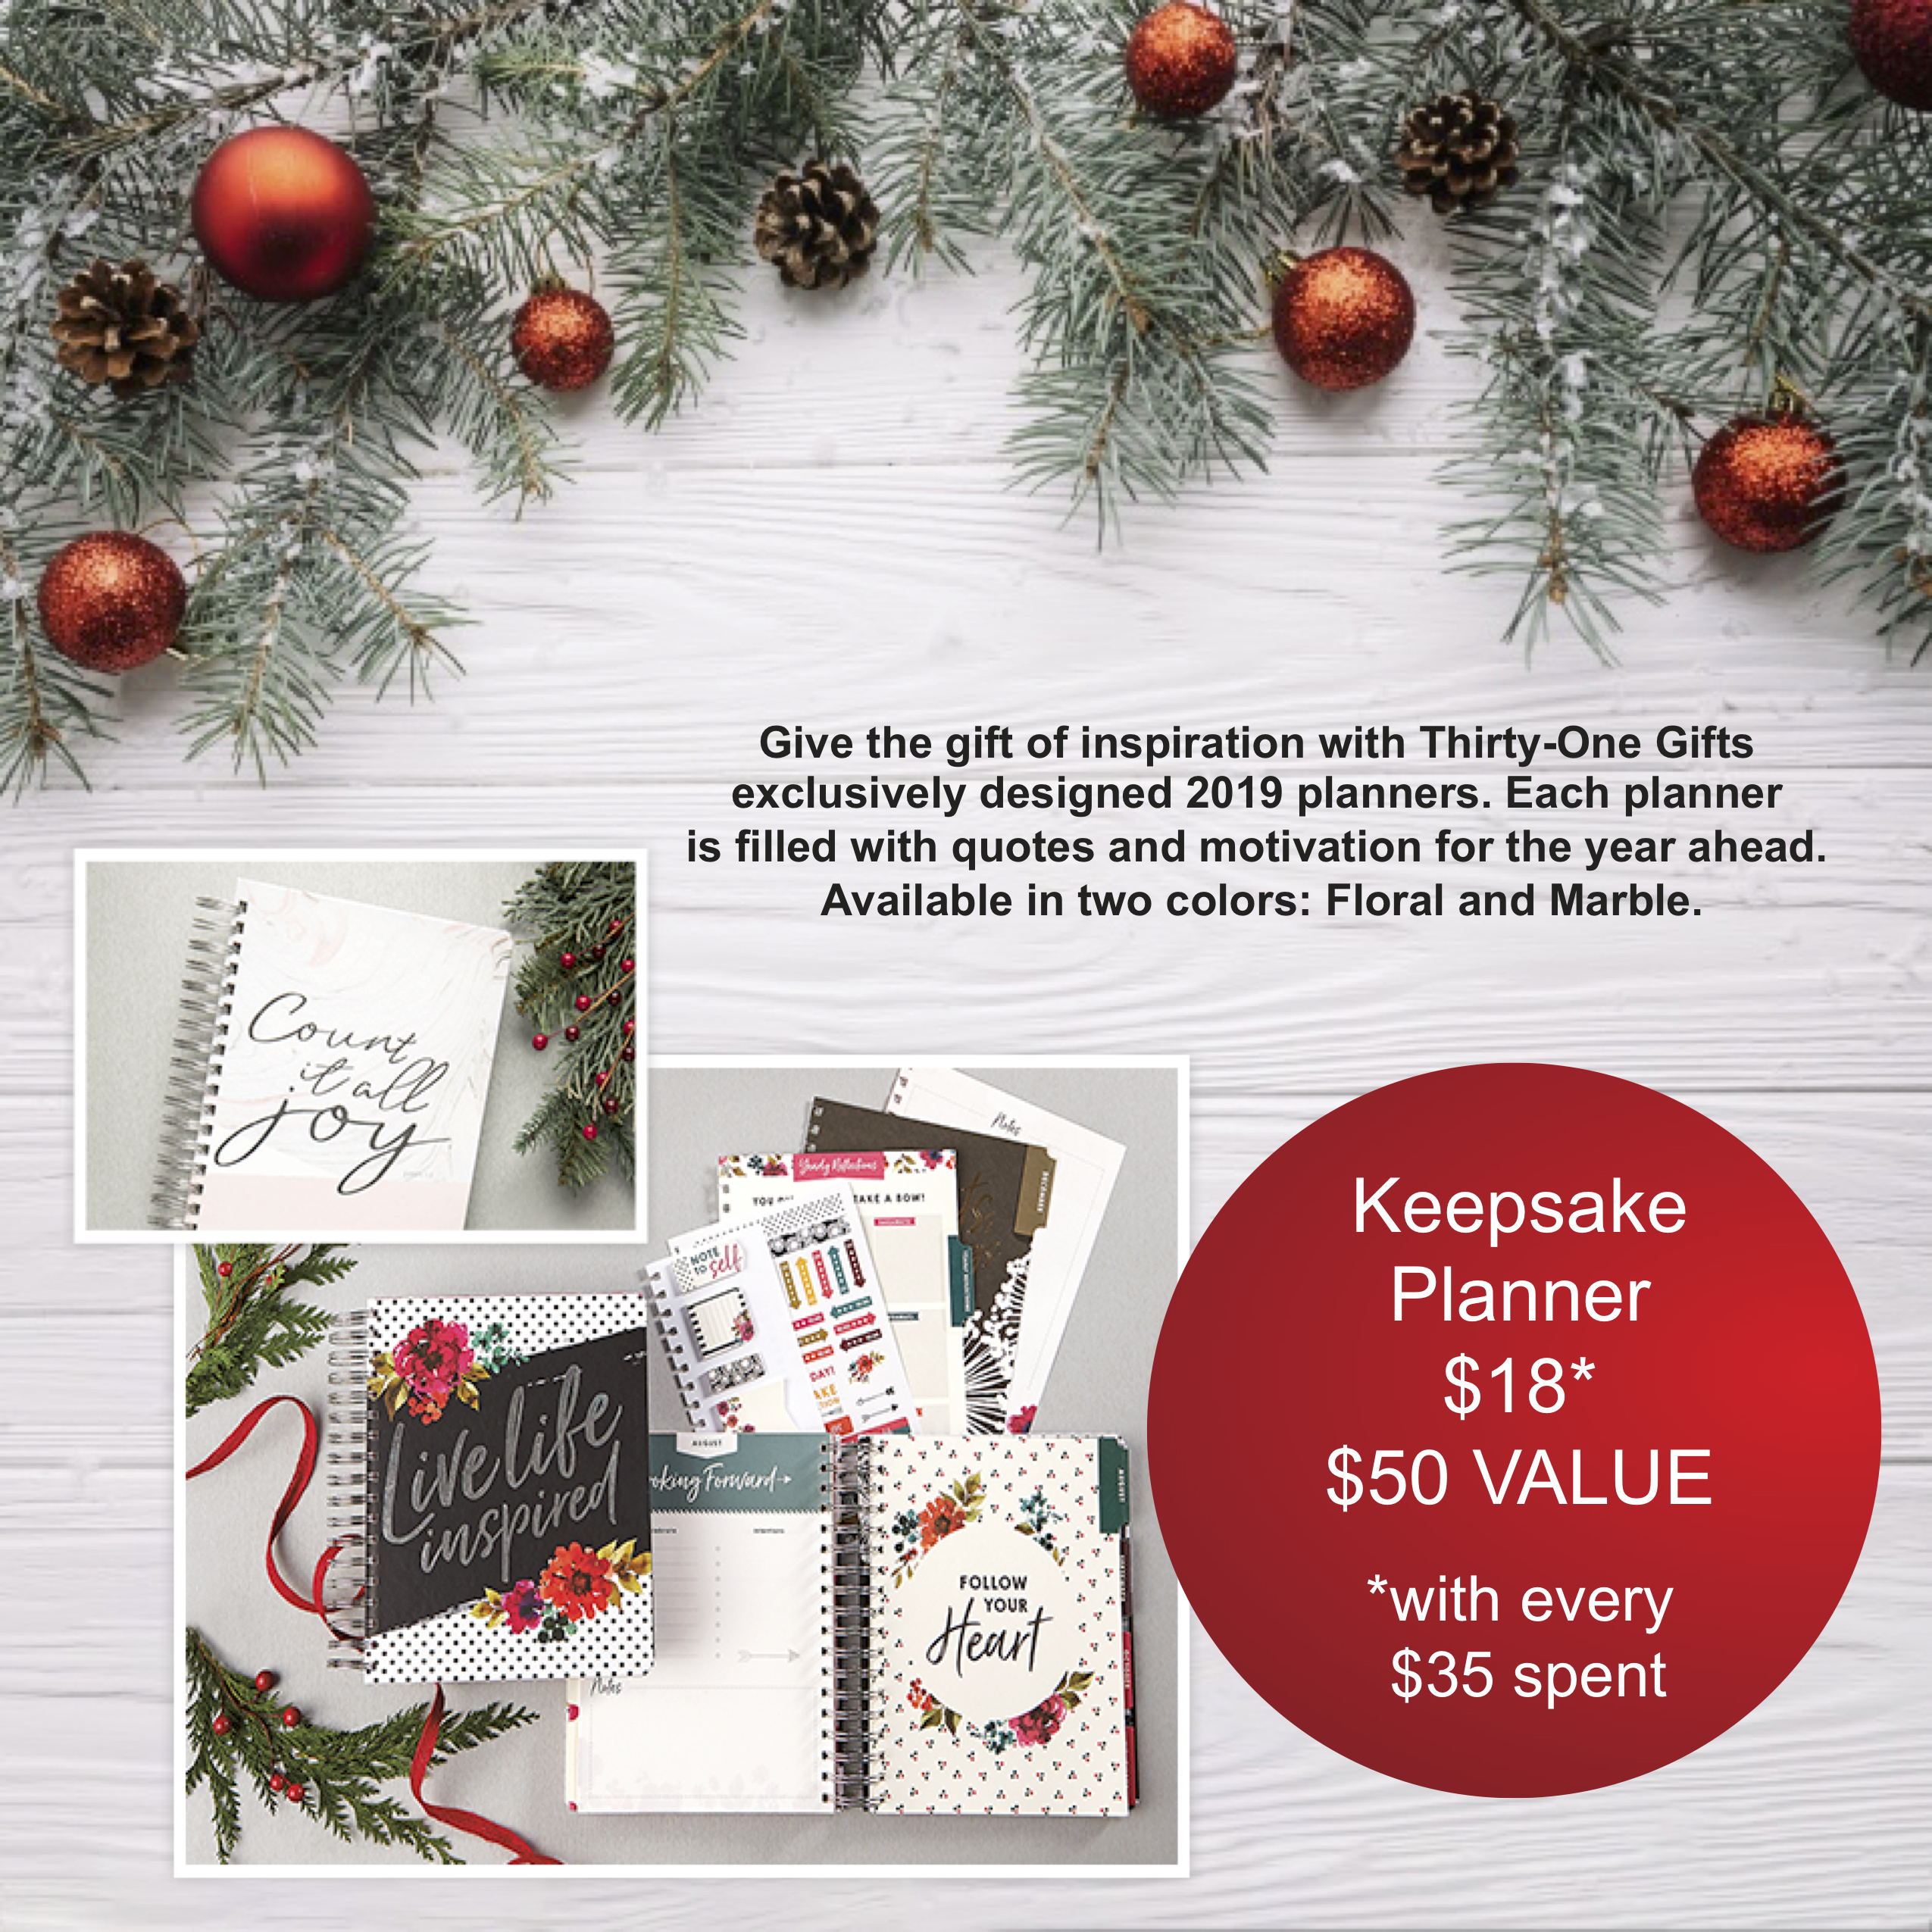 P-Thirty-One Gifts Keepsake Planner